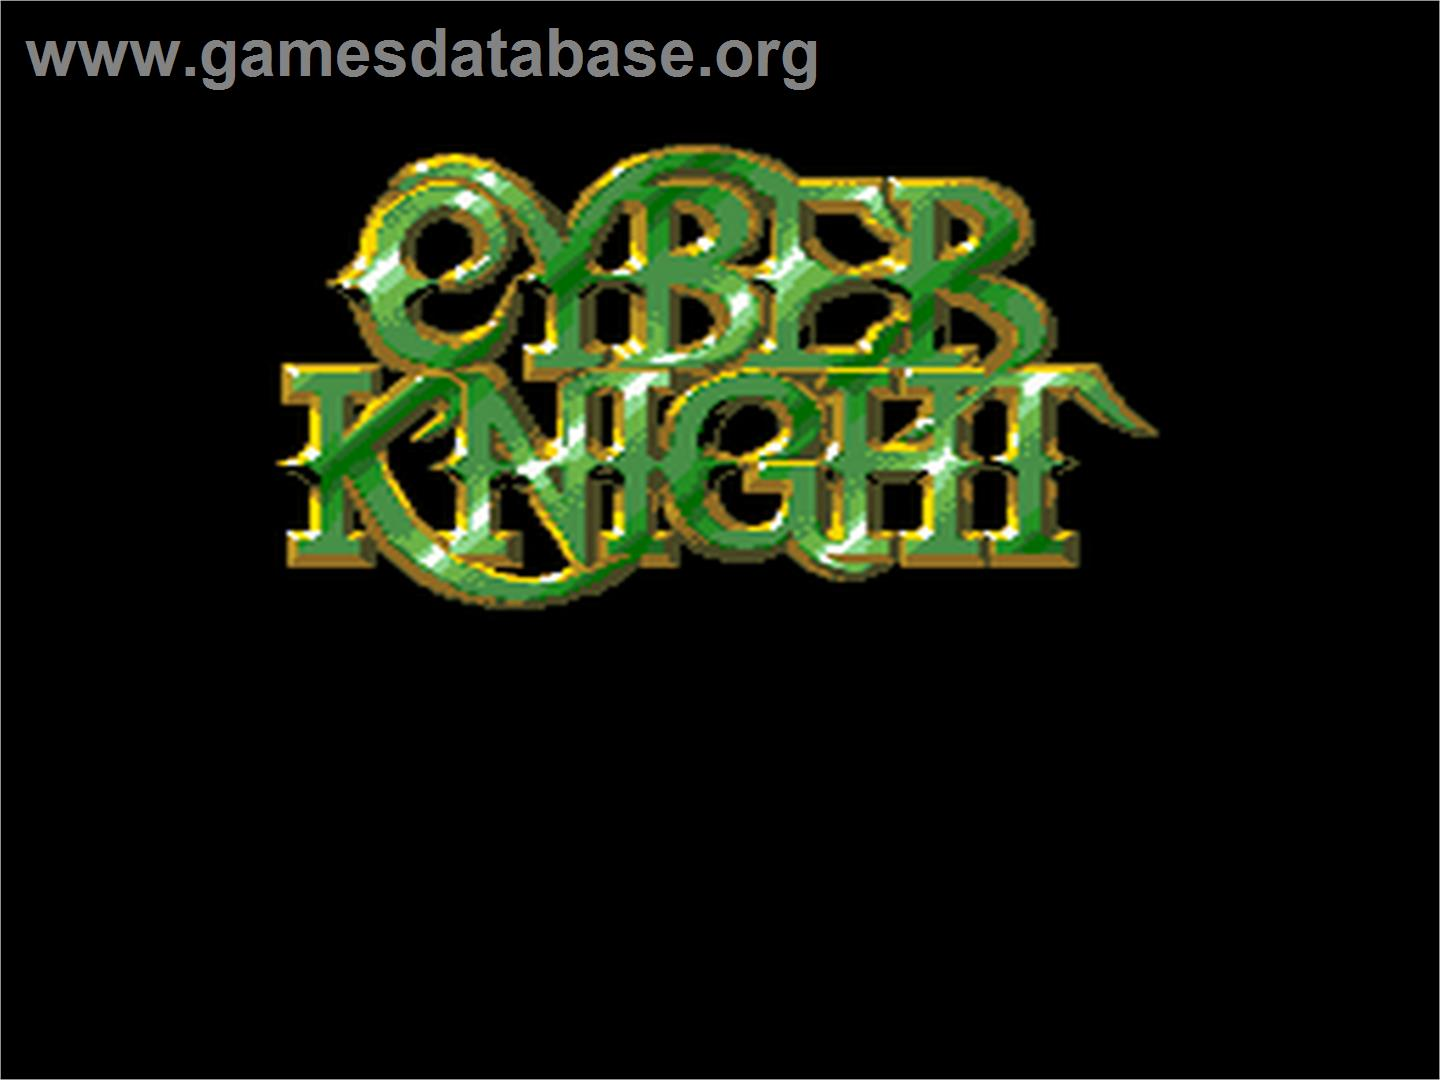 Cyber Knight - NEC PC Engine - Artwork - Title Screen